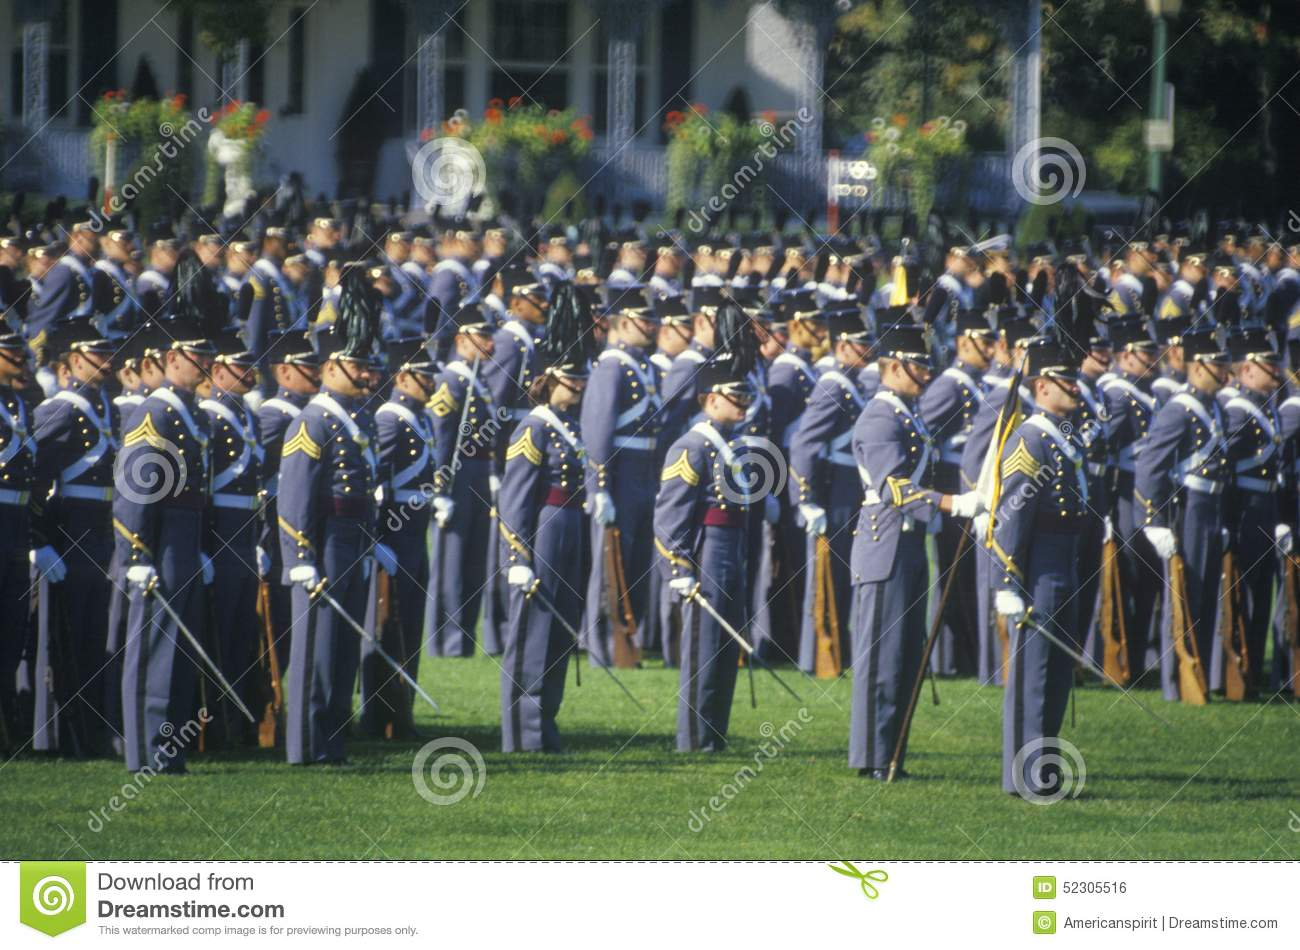 Cadets dans la formation, académie militaire de West Point, West Point, New York